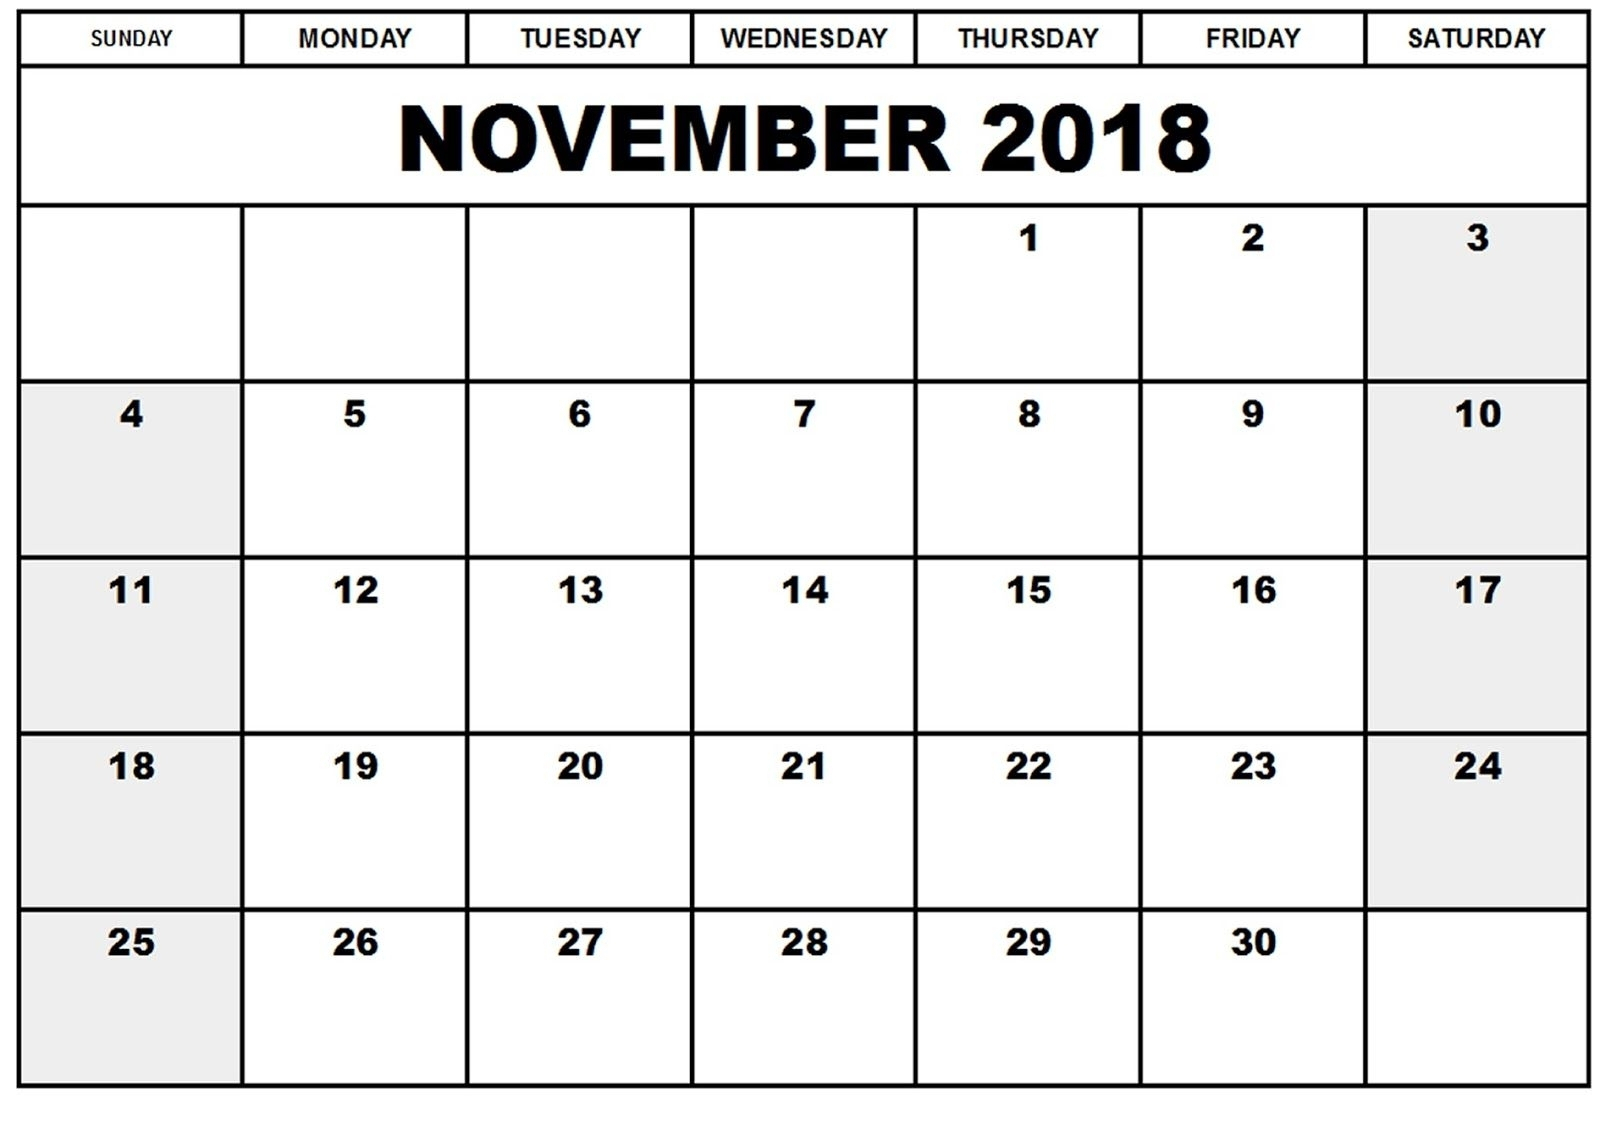 Monthly 2018 Calendar November December | Template Calendar Printable intended for November Calendar For Quikcalendertemplate